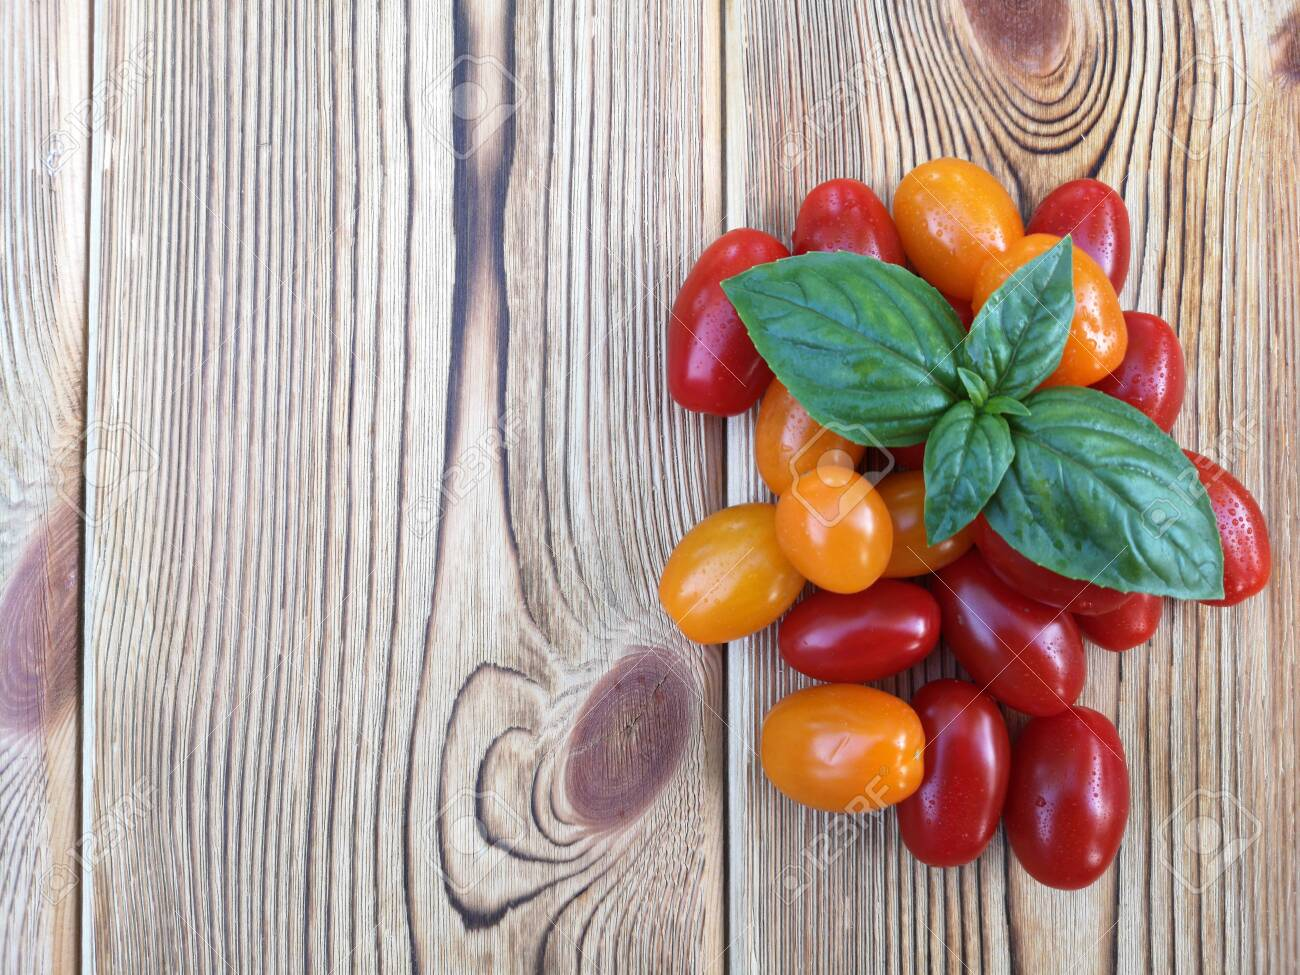 Cherry tomatoes and basil leaves on wooden background. Selective focus. The concept of consumption of local products. Copy space. - 150013612